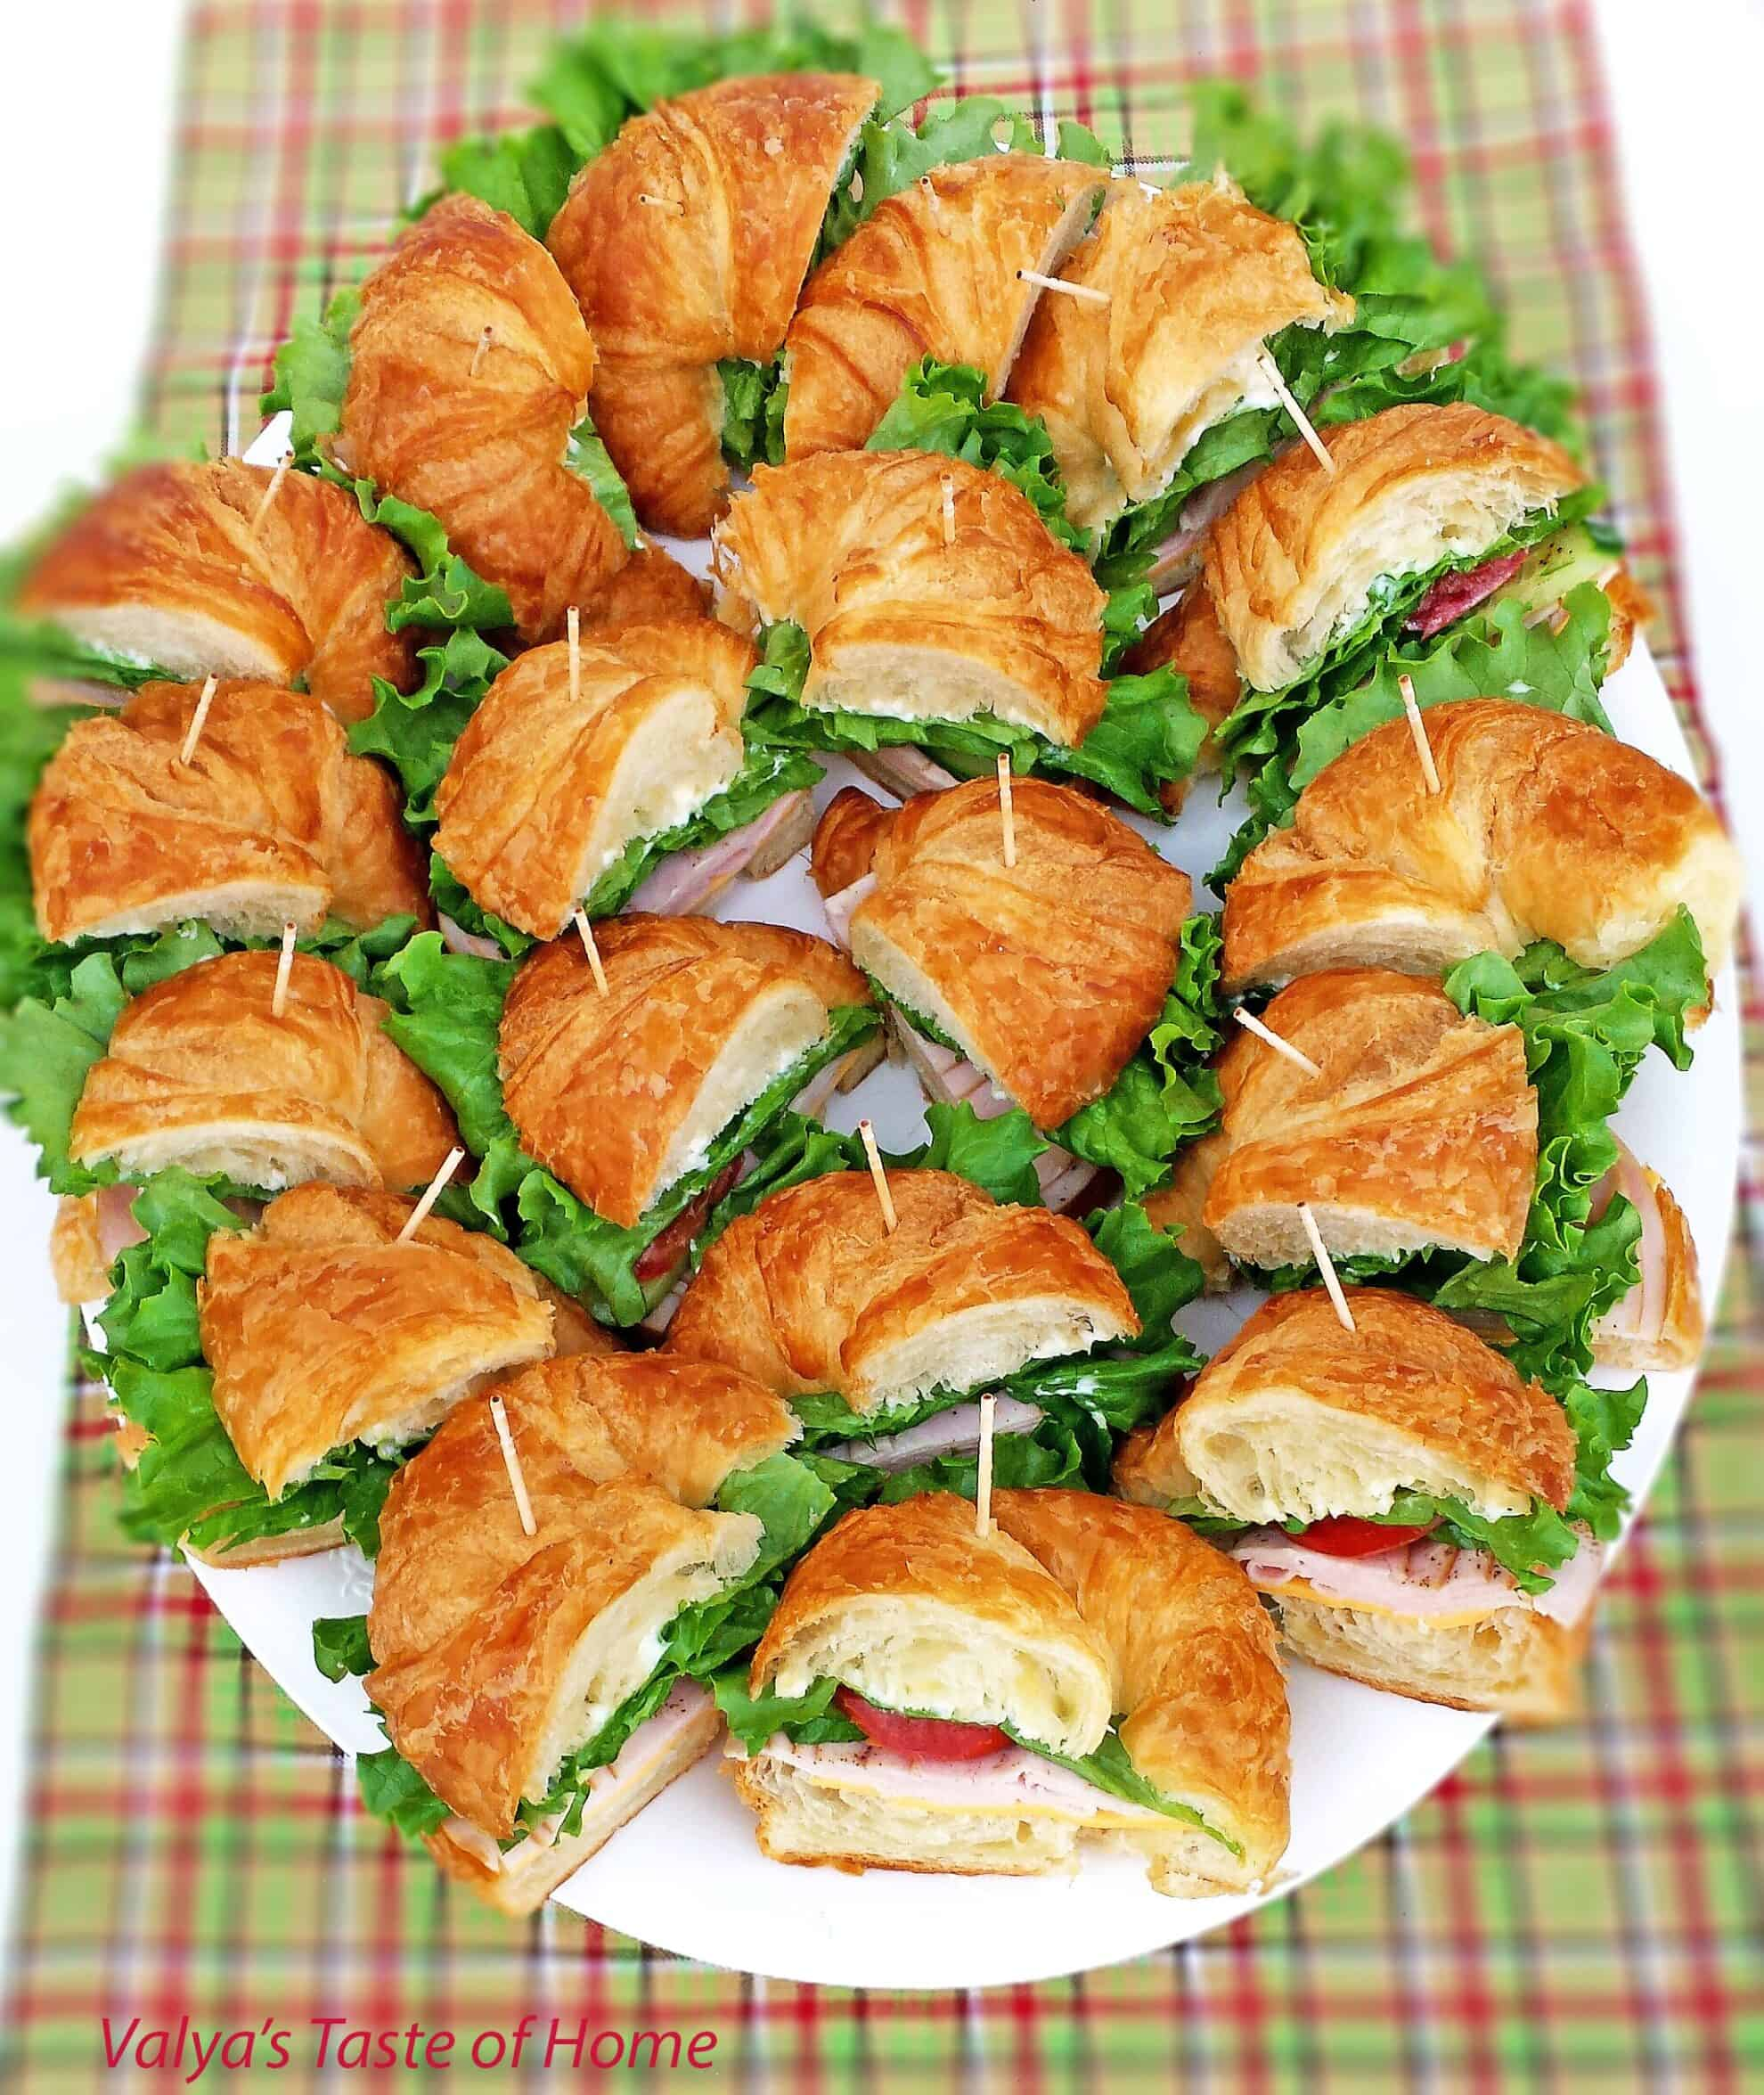 Turkey Croissan'wich Appetizers